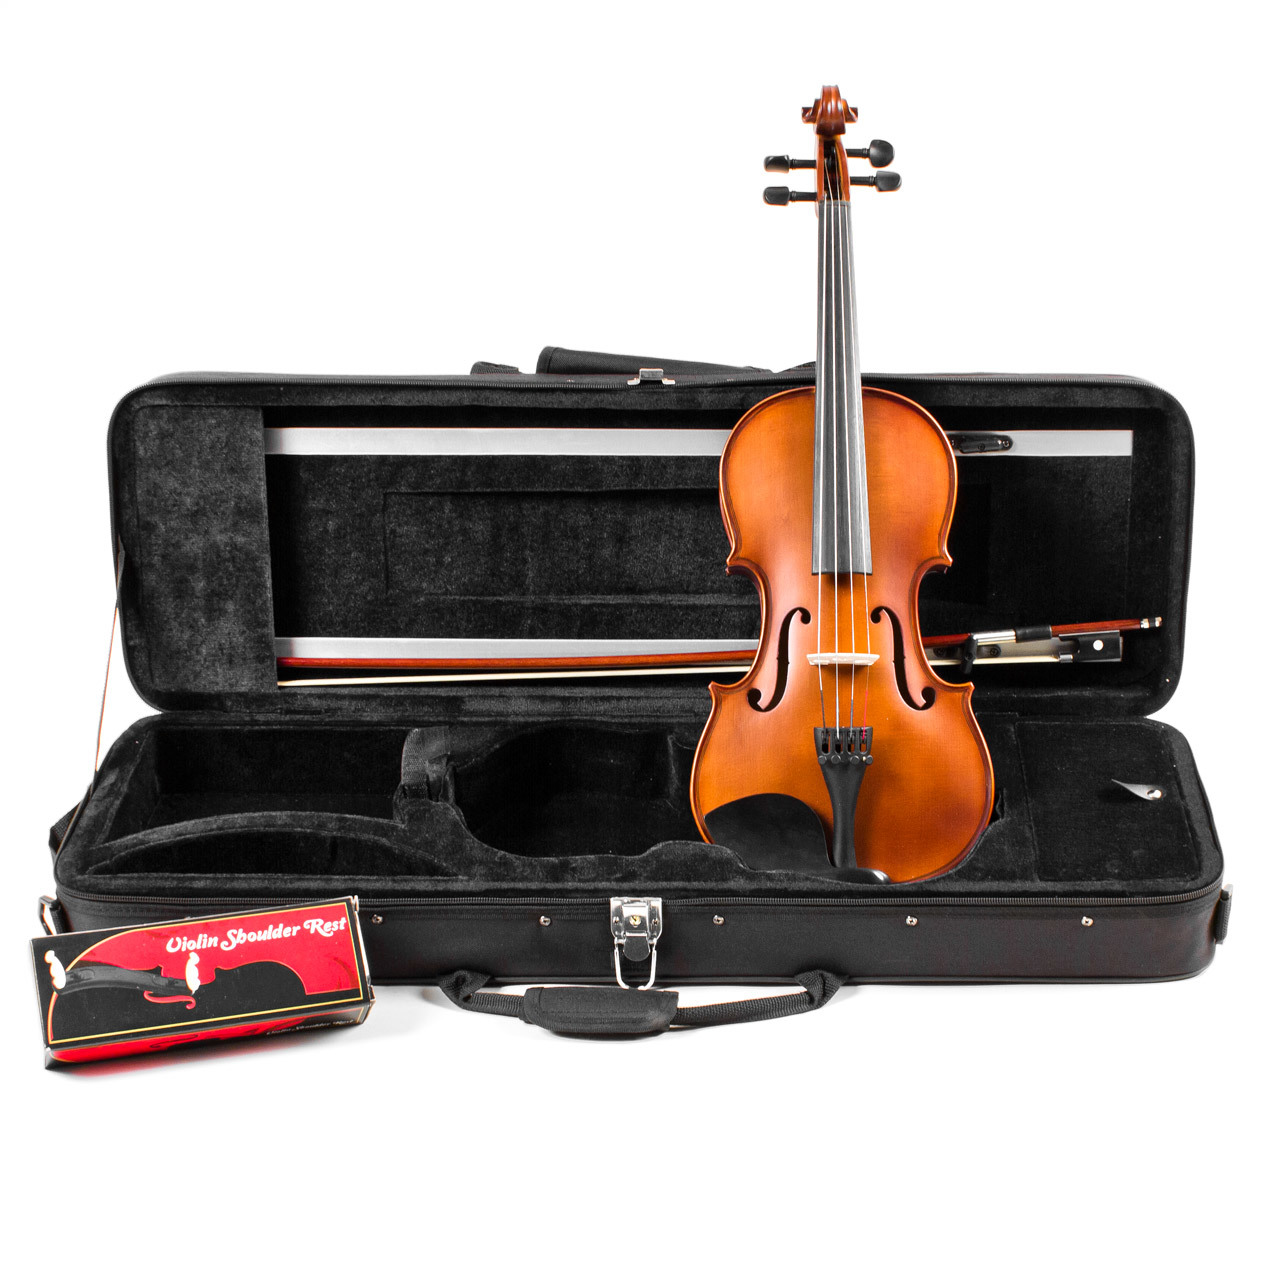 Palatino Intermediate Genoa Solid Spruce Violin Outfit 1 2 Size VN-500-1 2 by Palatino